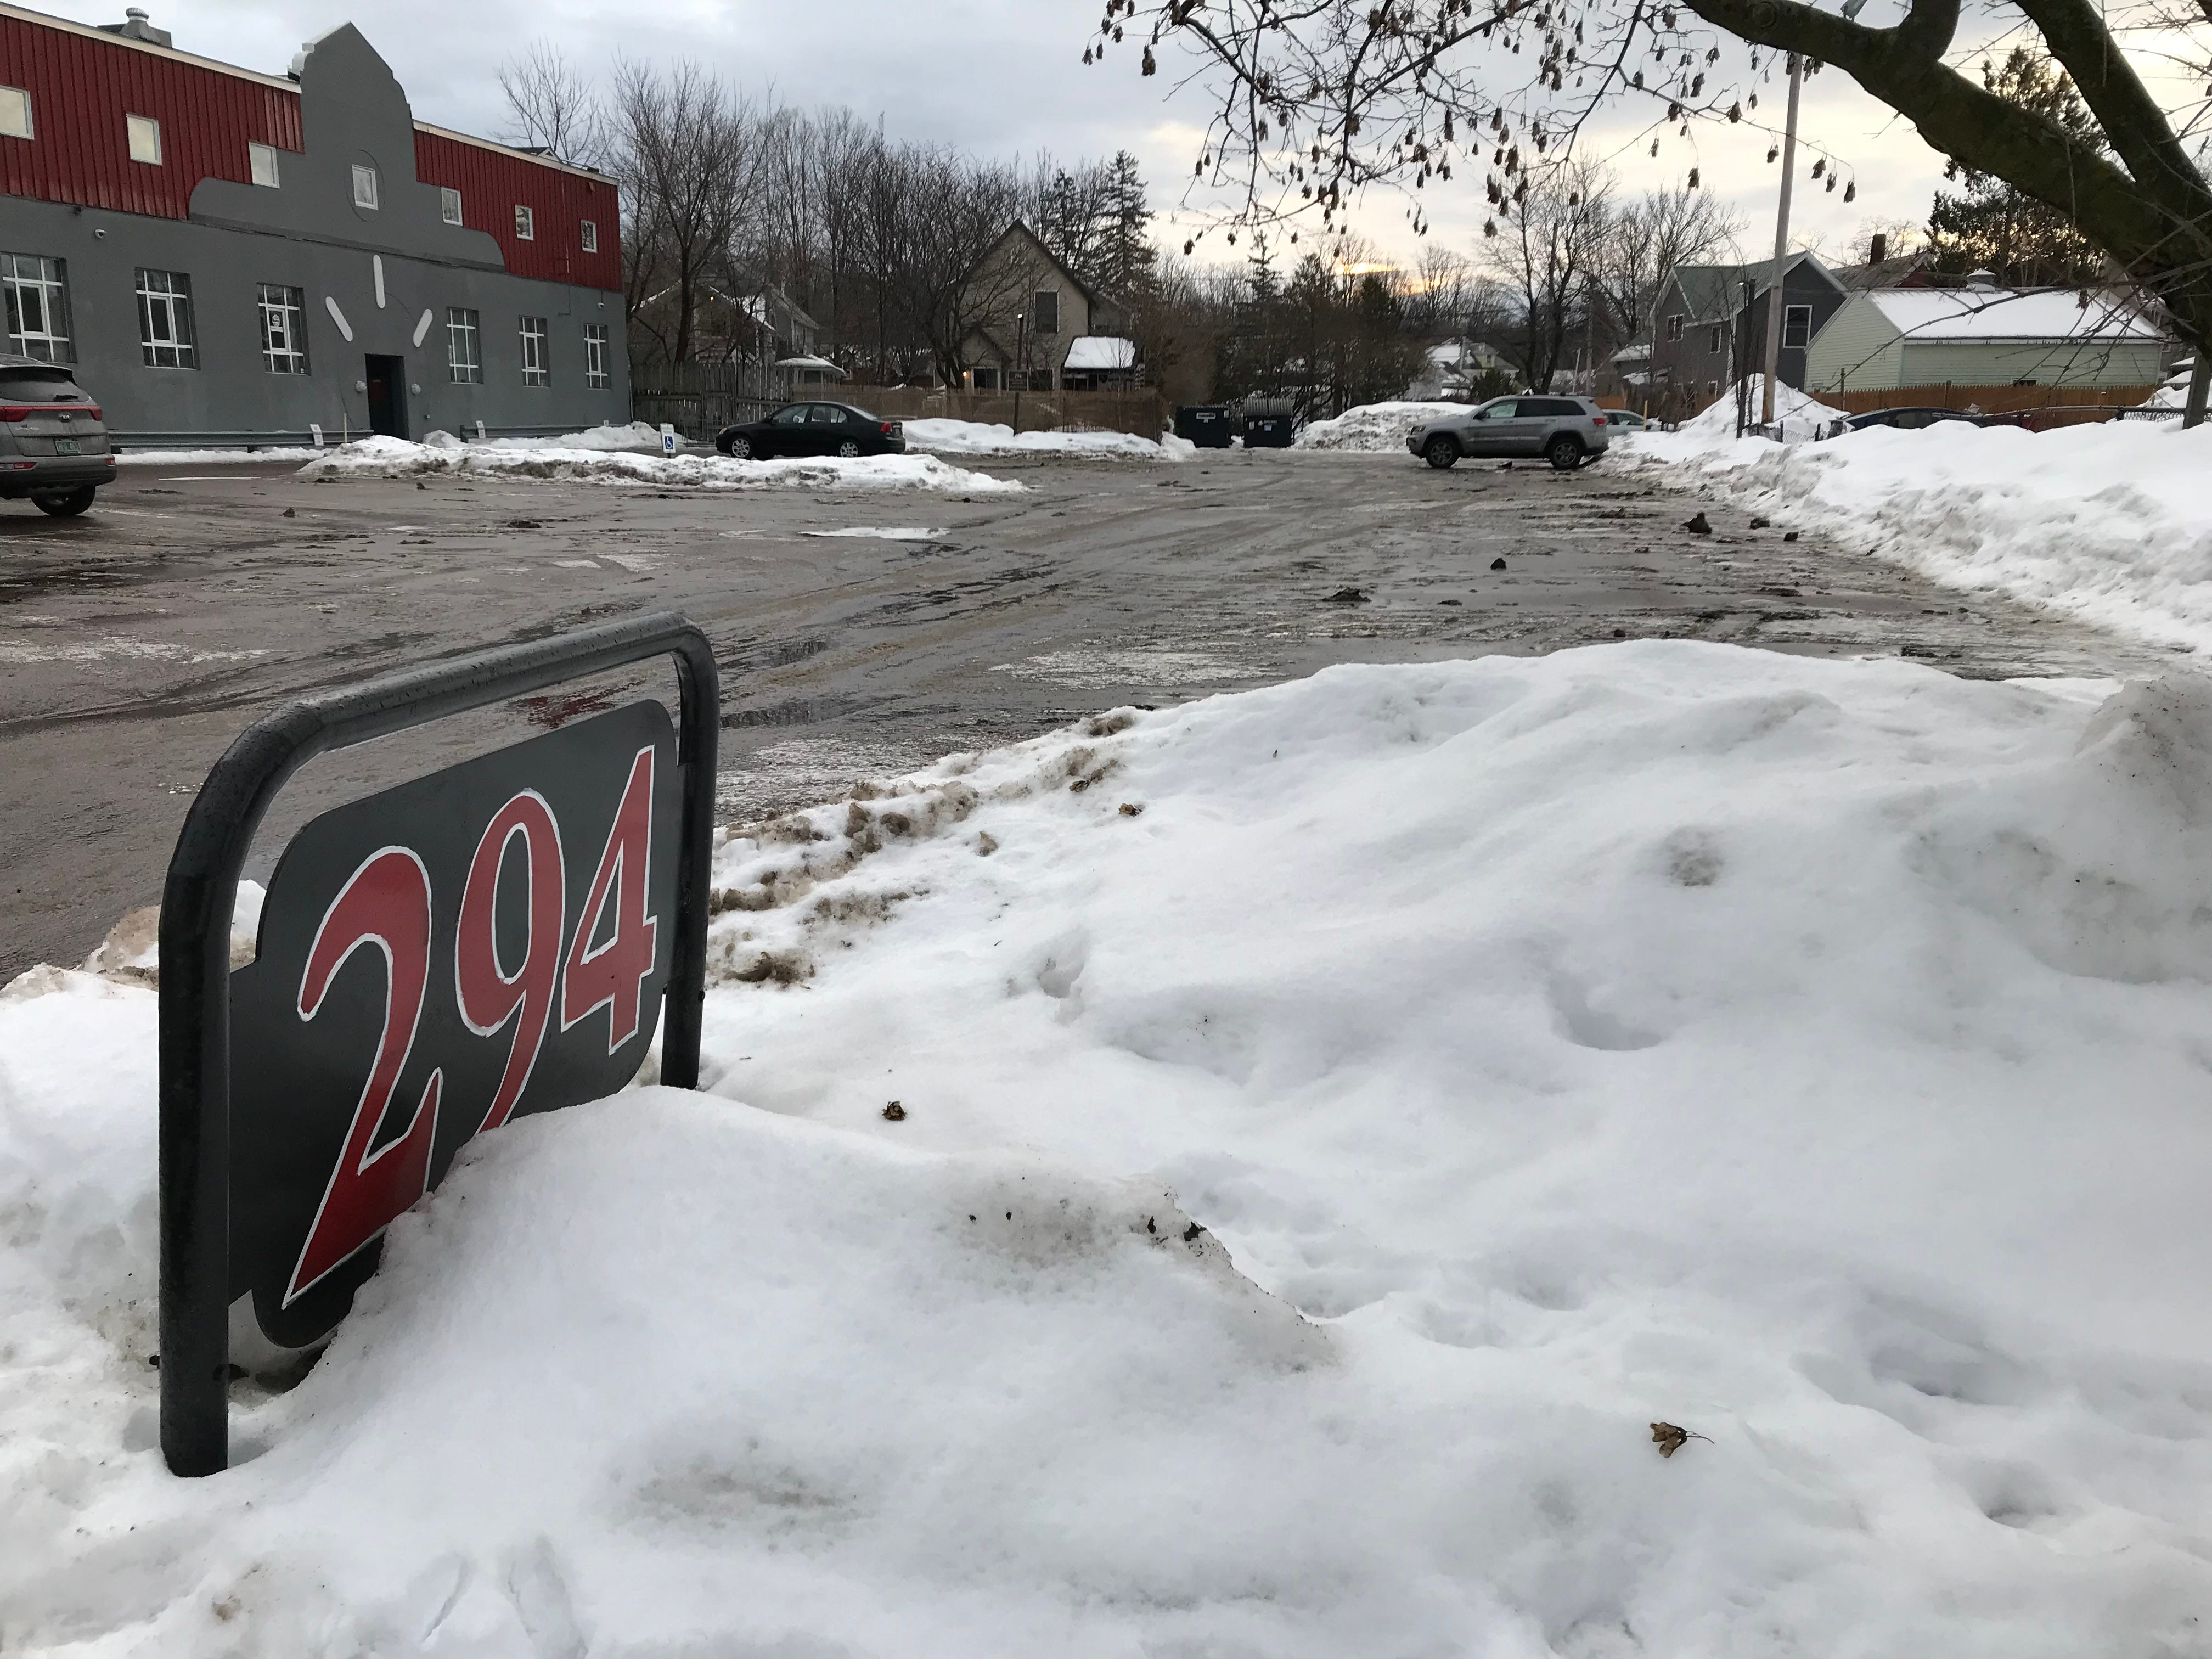 The parking lot entrance to 294 N. Winooski Ave. in Burlington on Monday morning of Feb. 4, 2019. A University of Vermont student was found unconscious at this location on Saturday and was declared dead at the scene. Police say sub-zero temperatures may have been a factor in the death.